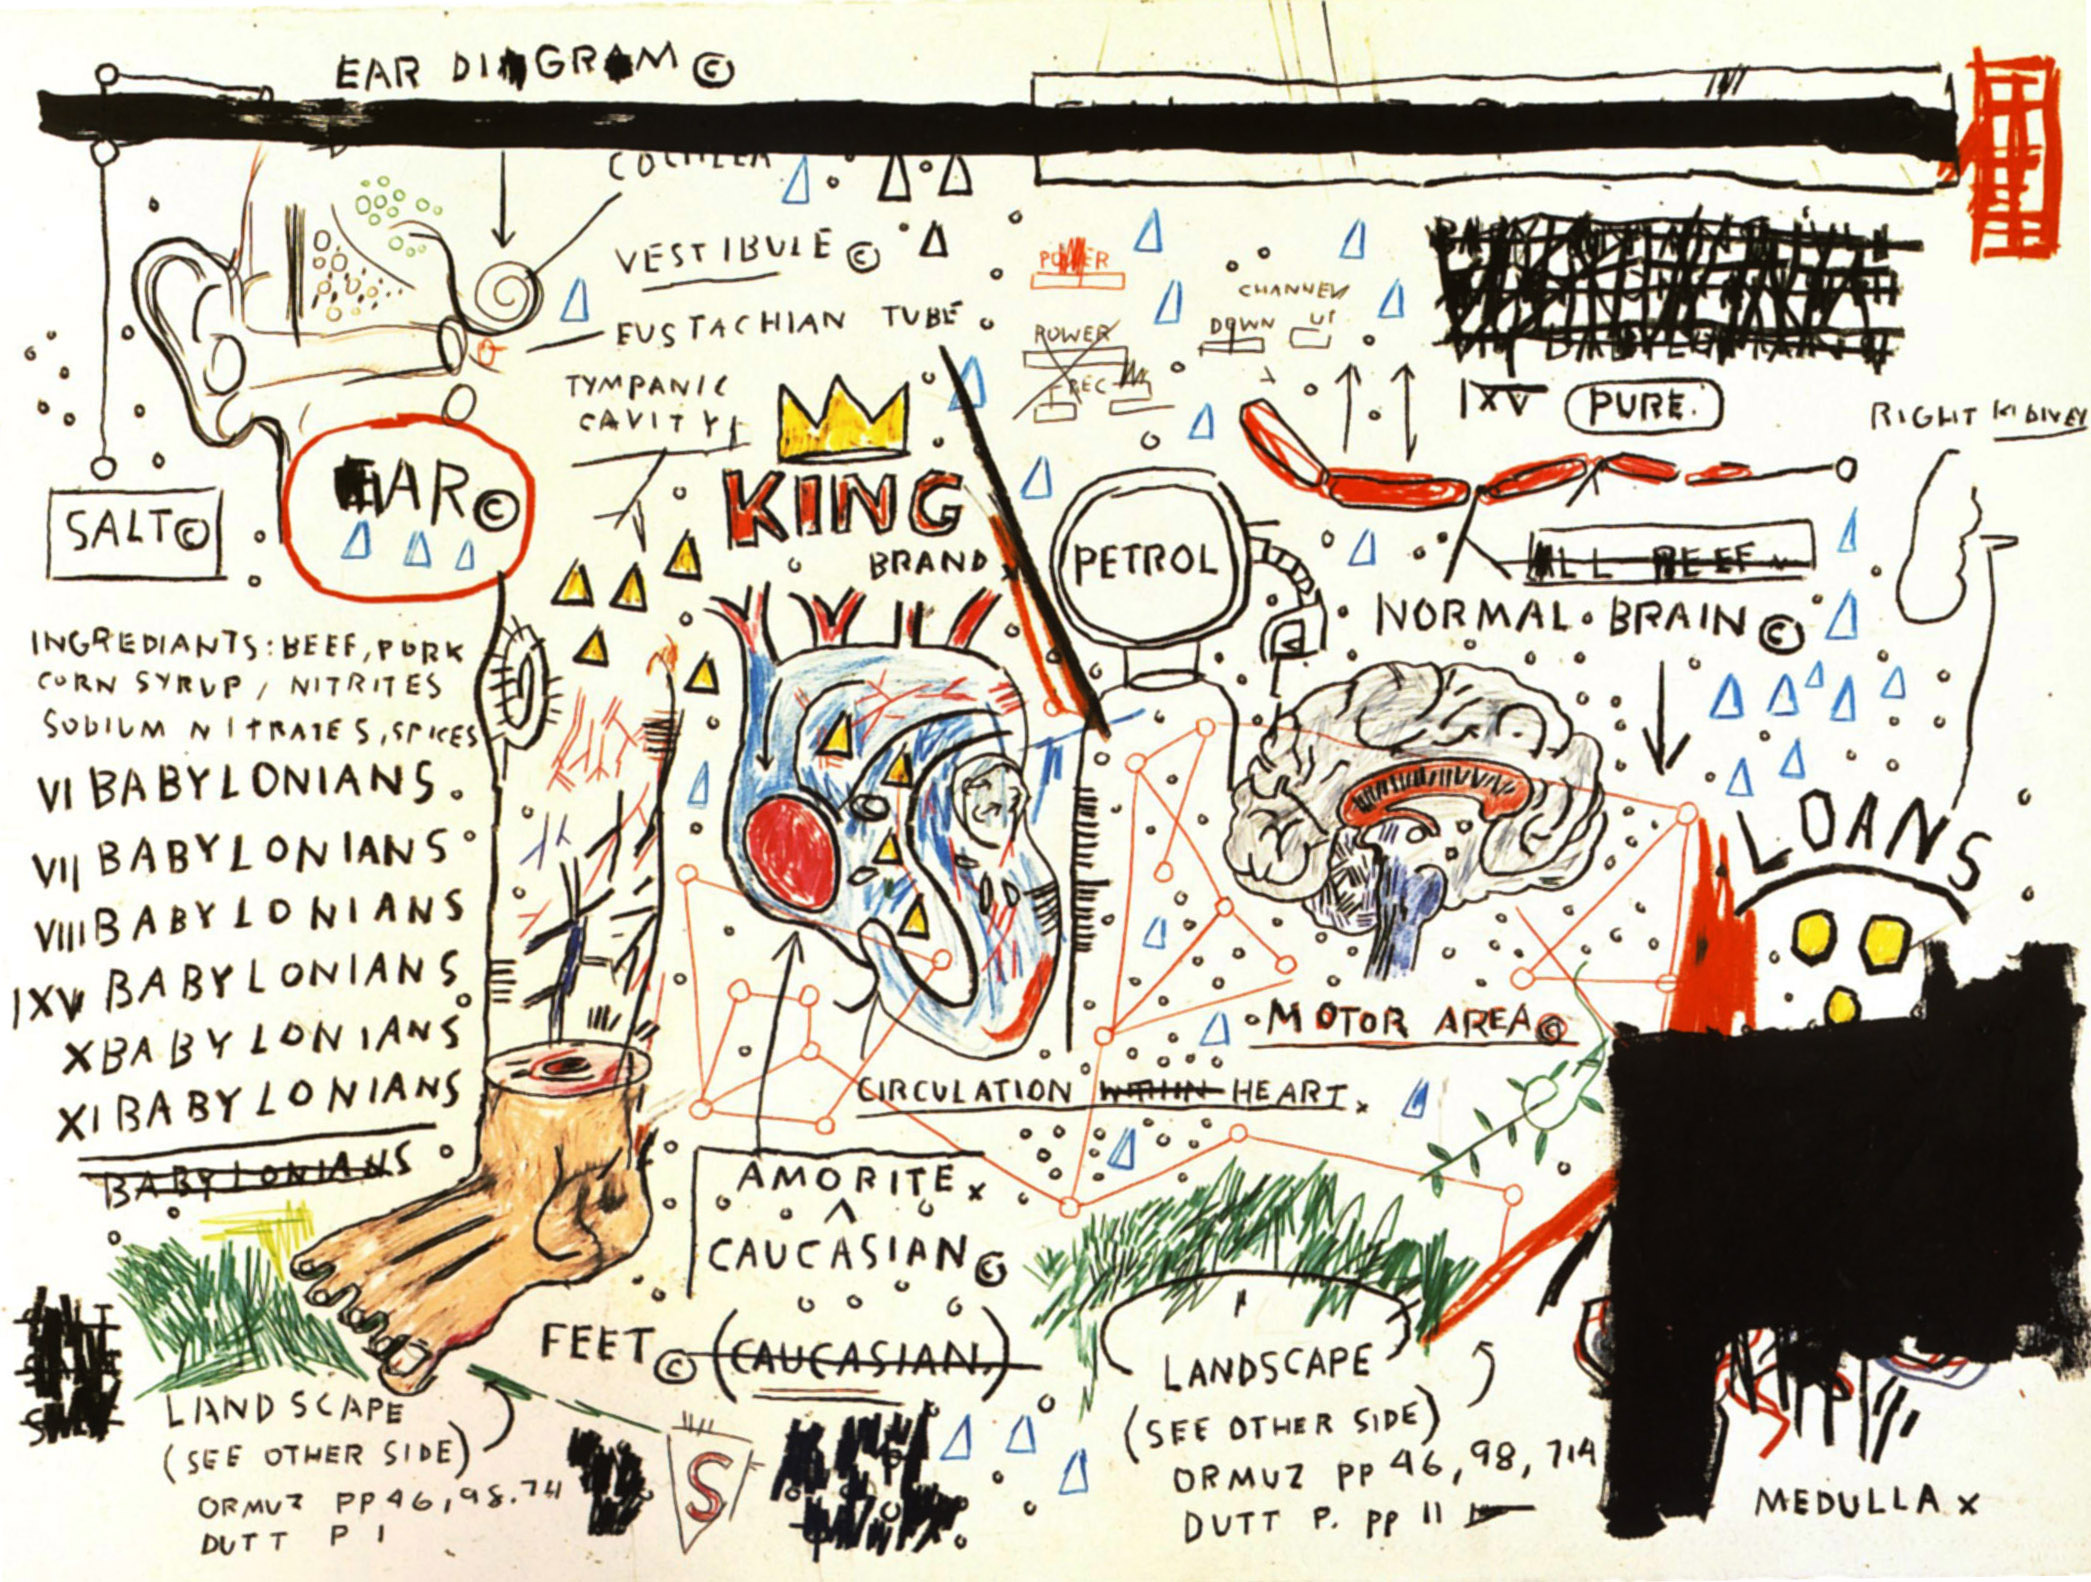 Jean-Michel Basquiat, King Brand